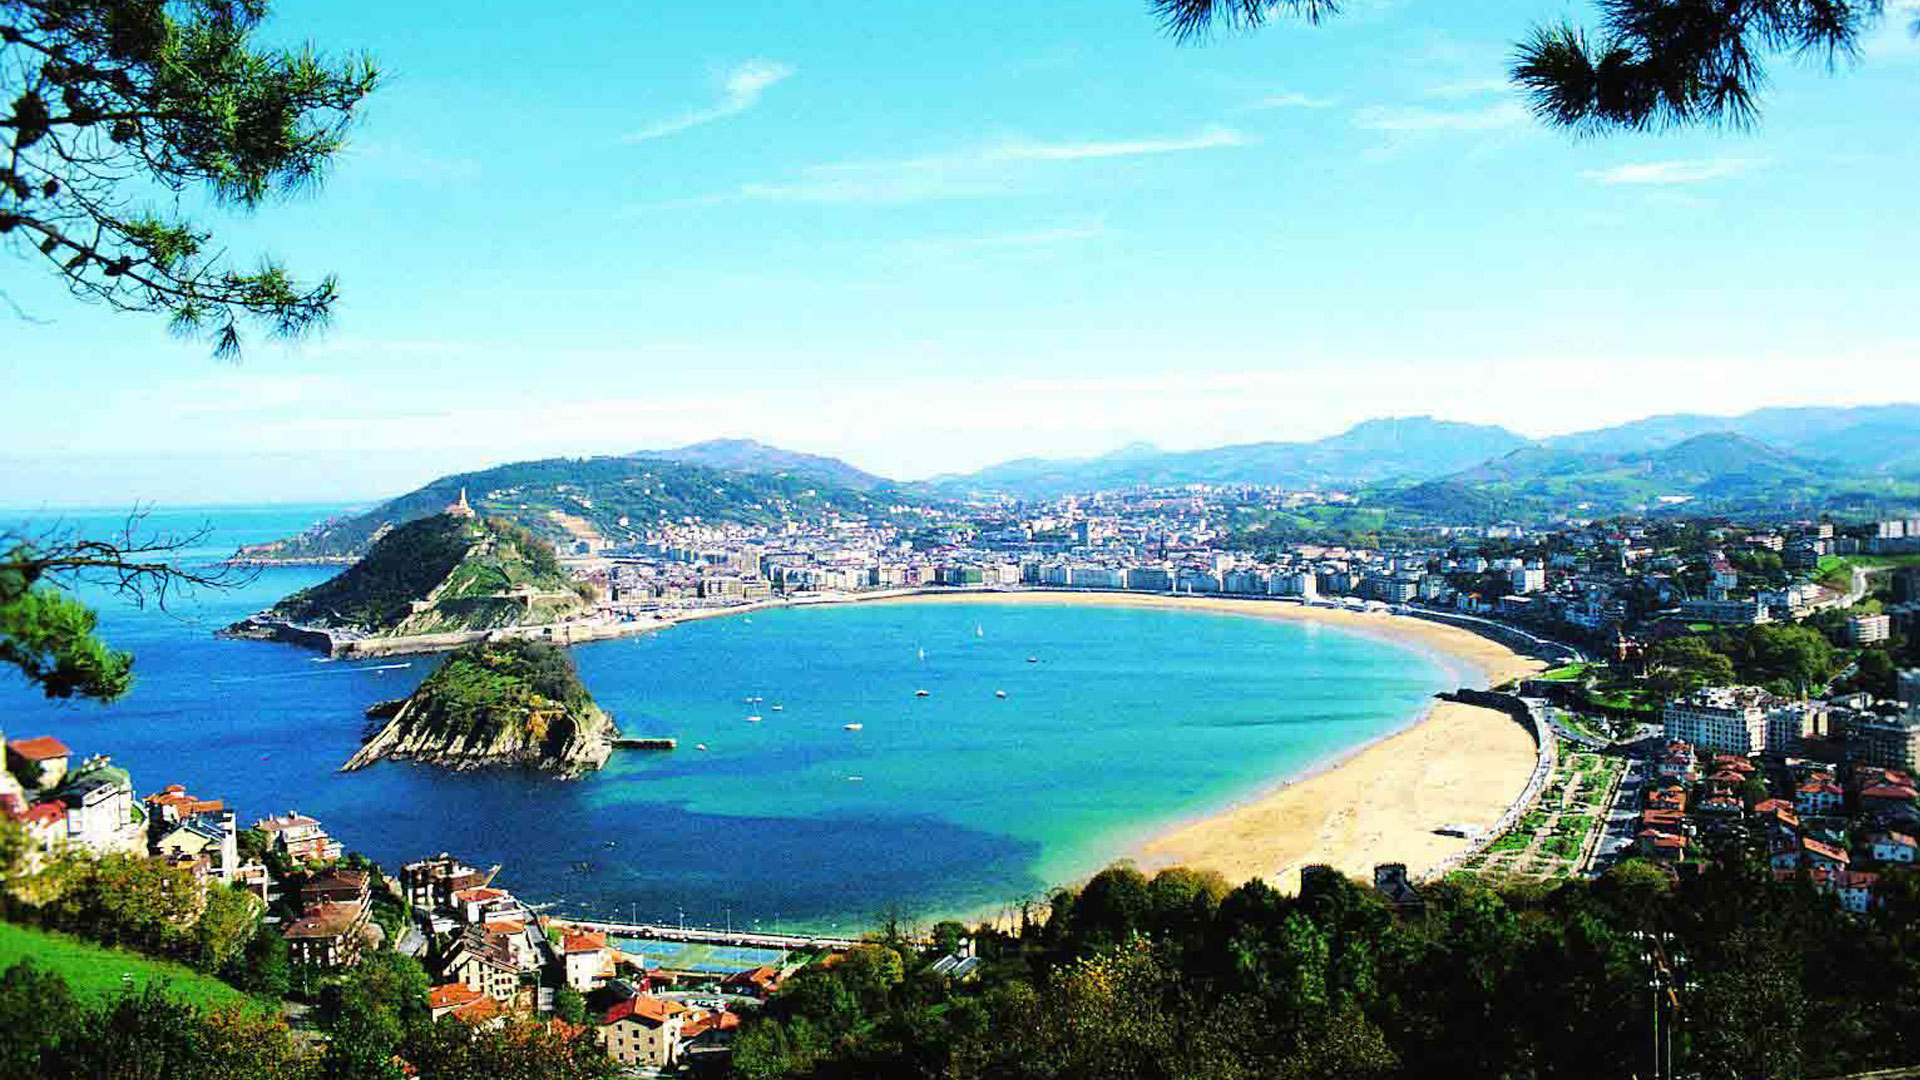 San Sebastian, a deserved and tasty trip after walking the ...